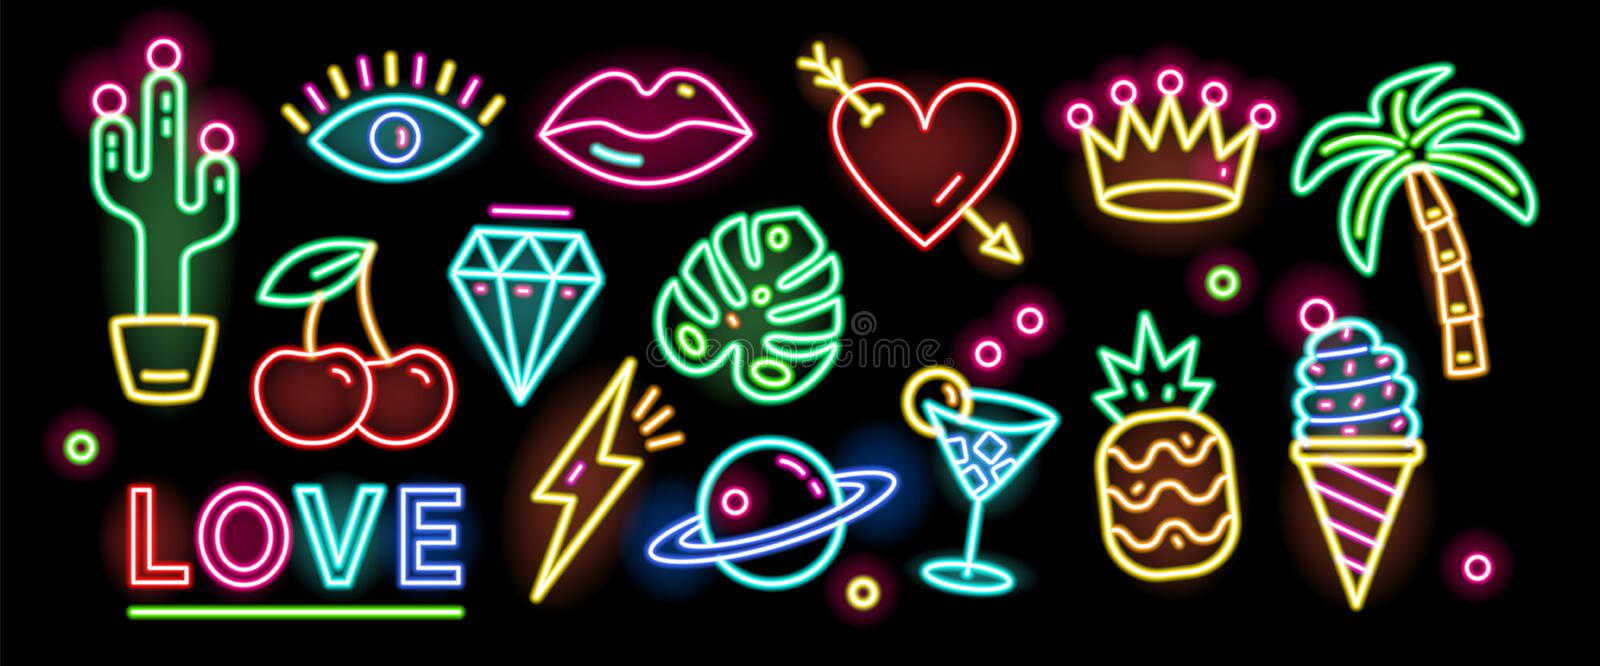 Bundle of symbols, signs or signboards glowing with colorful neon light isolated on black background. Collection of. Trendy design elements or decorations stock illustration